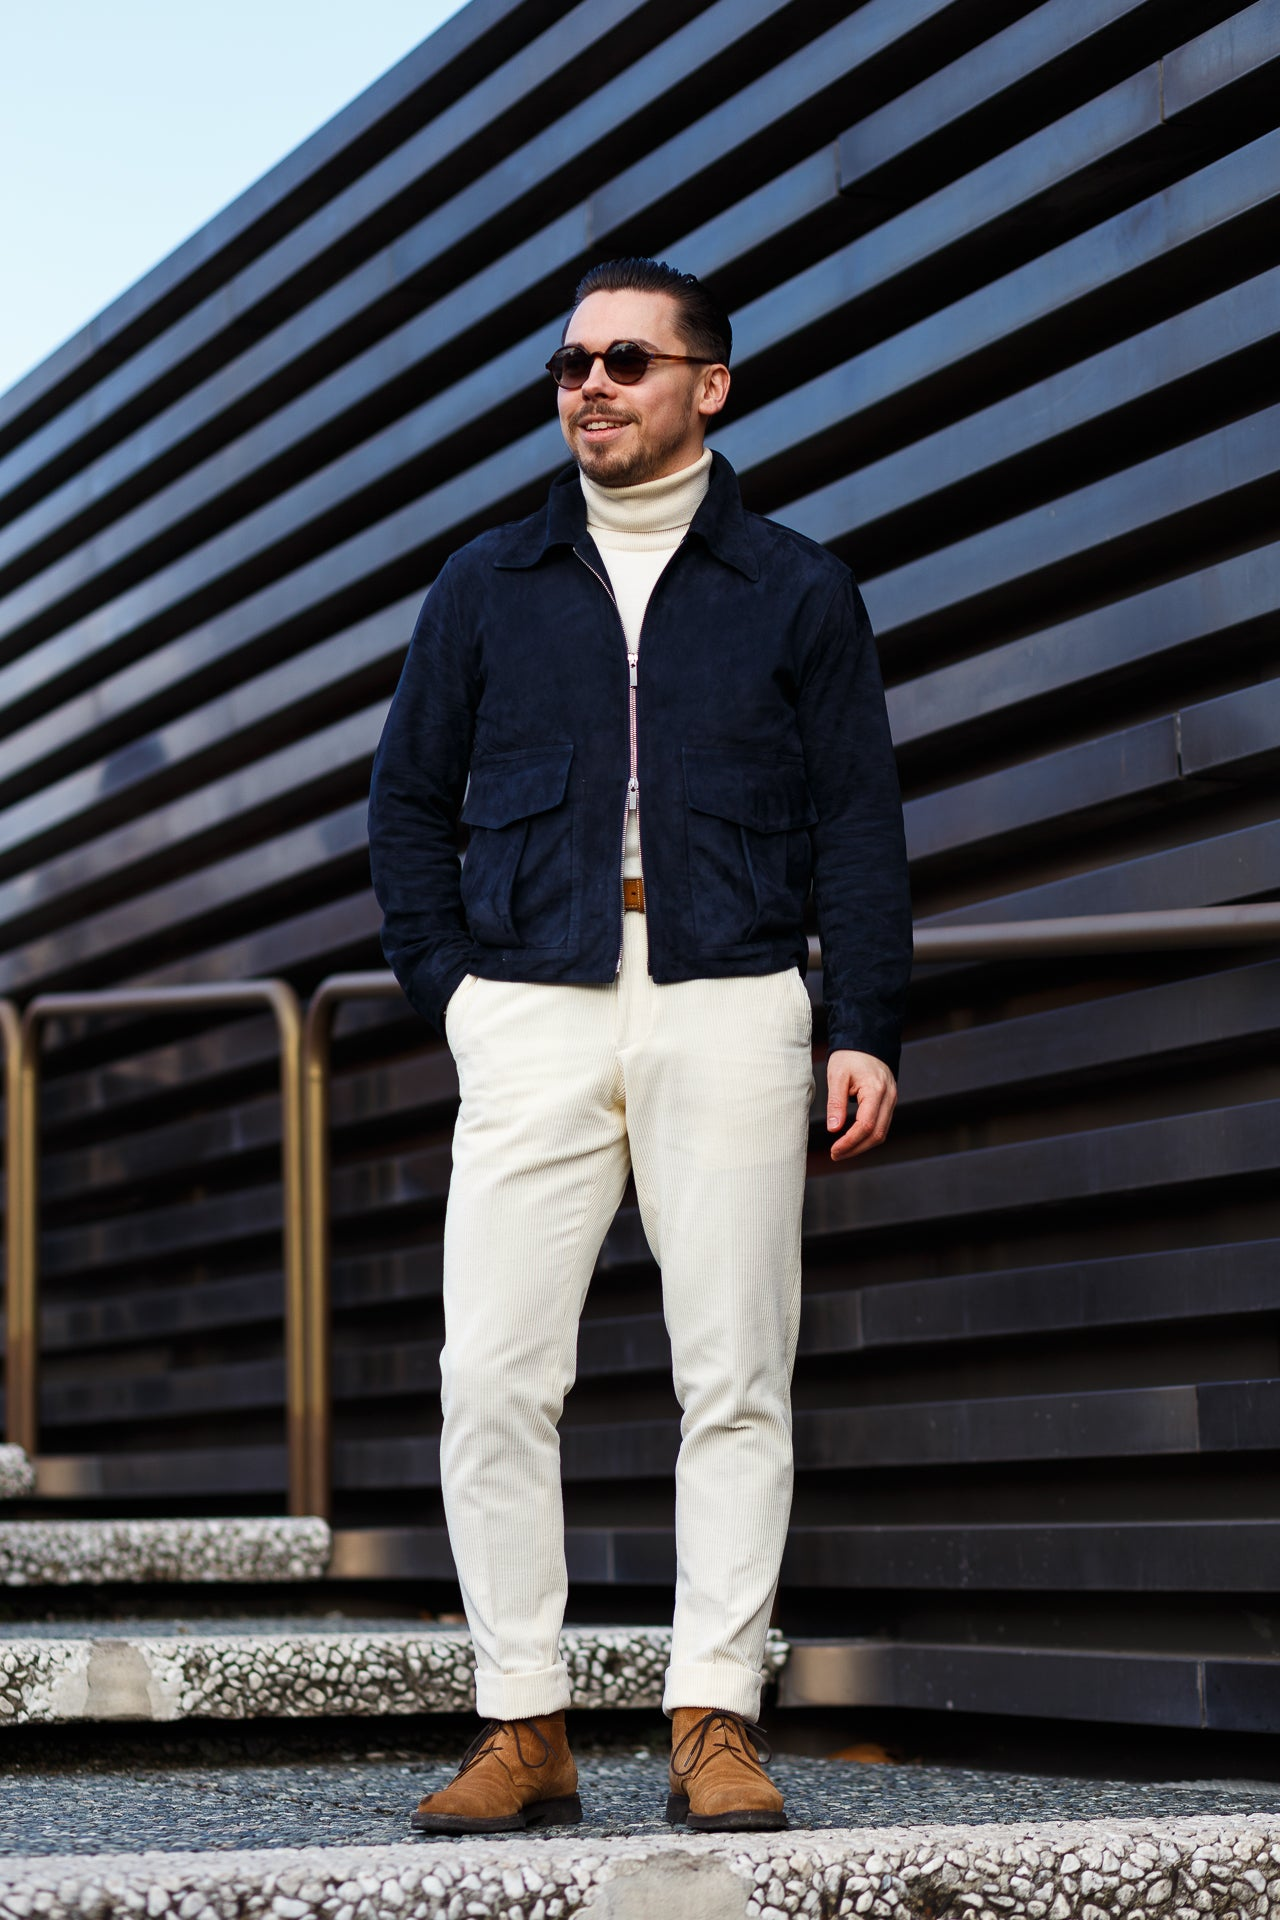 The Stoffa flight jacket with white corduroy trousers and roll neck sweater at Pitti Uomo 93